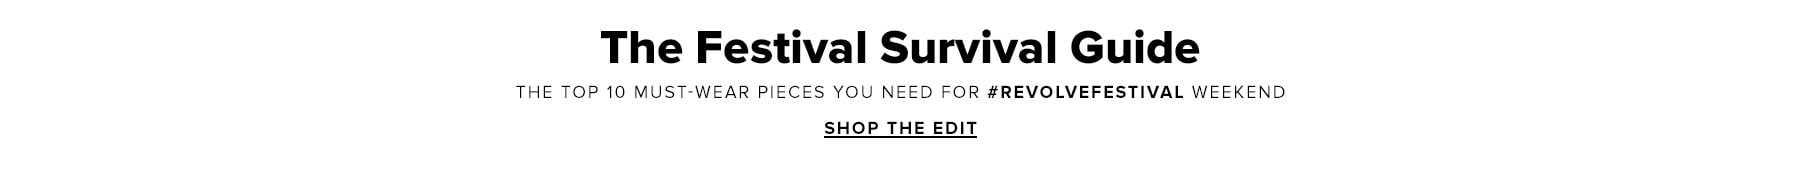 The Festival Survival Guide. The Top 10 must-wear pieces you need for revolvefestival weekend. Shop the Edit.